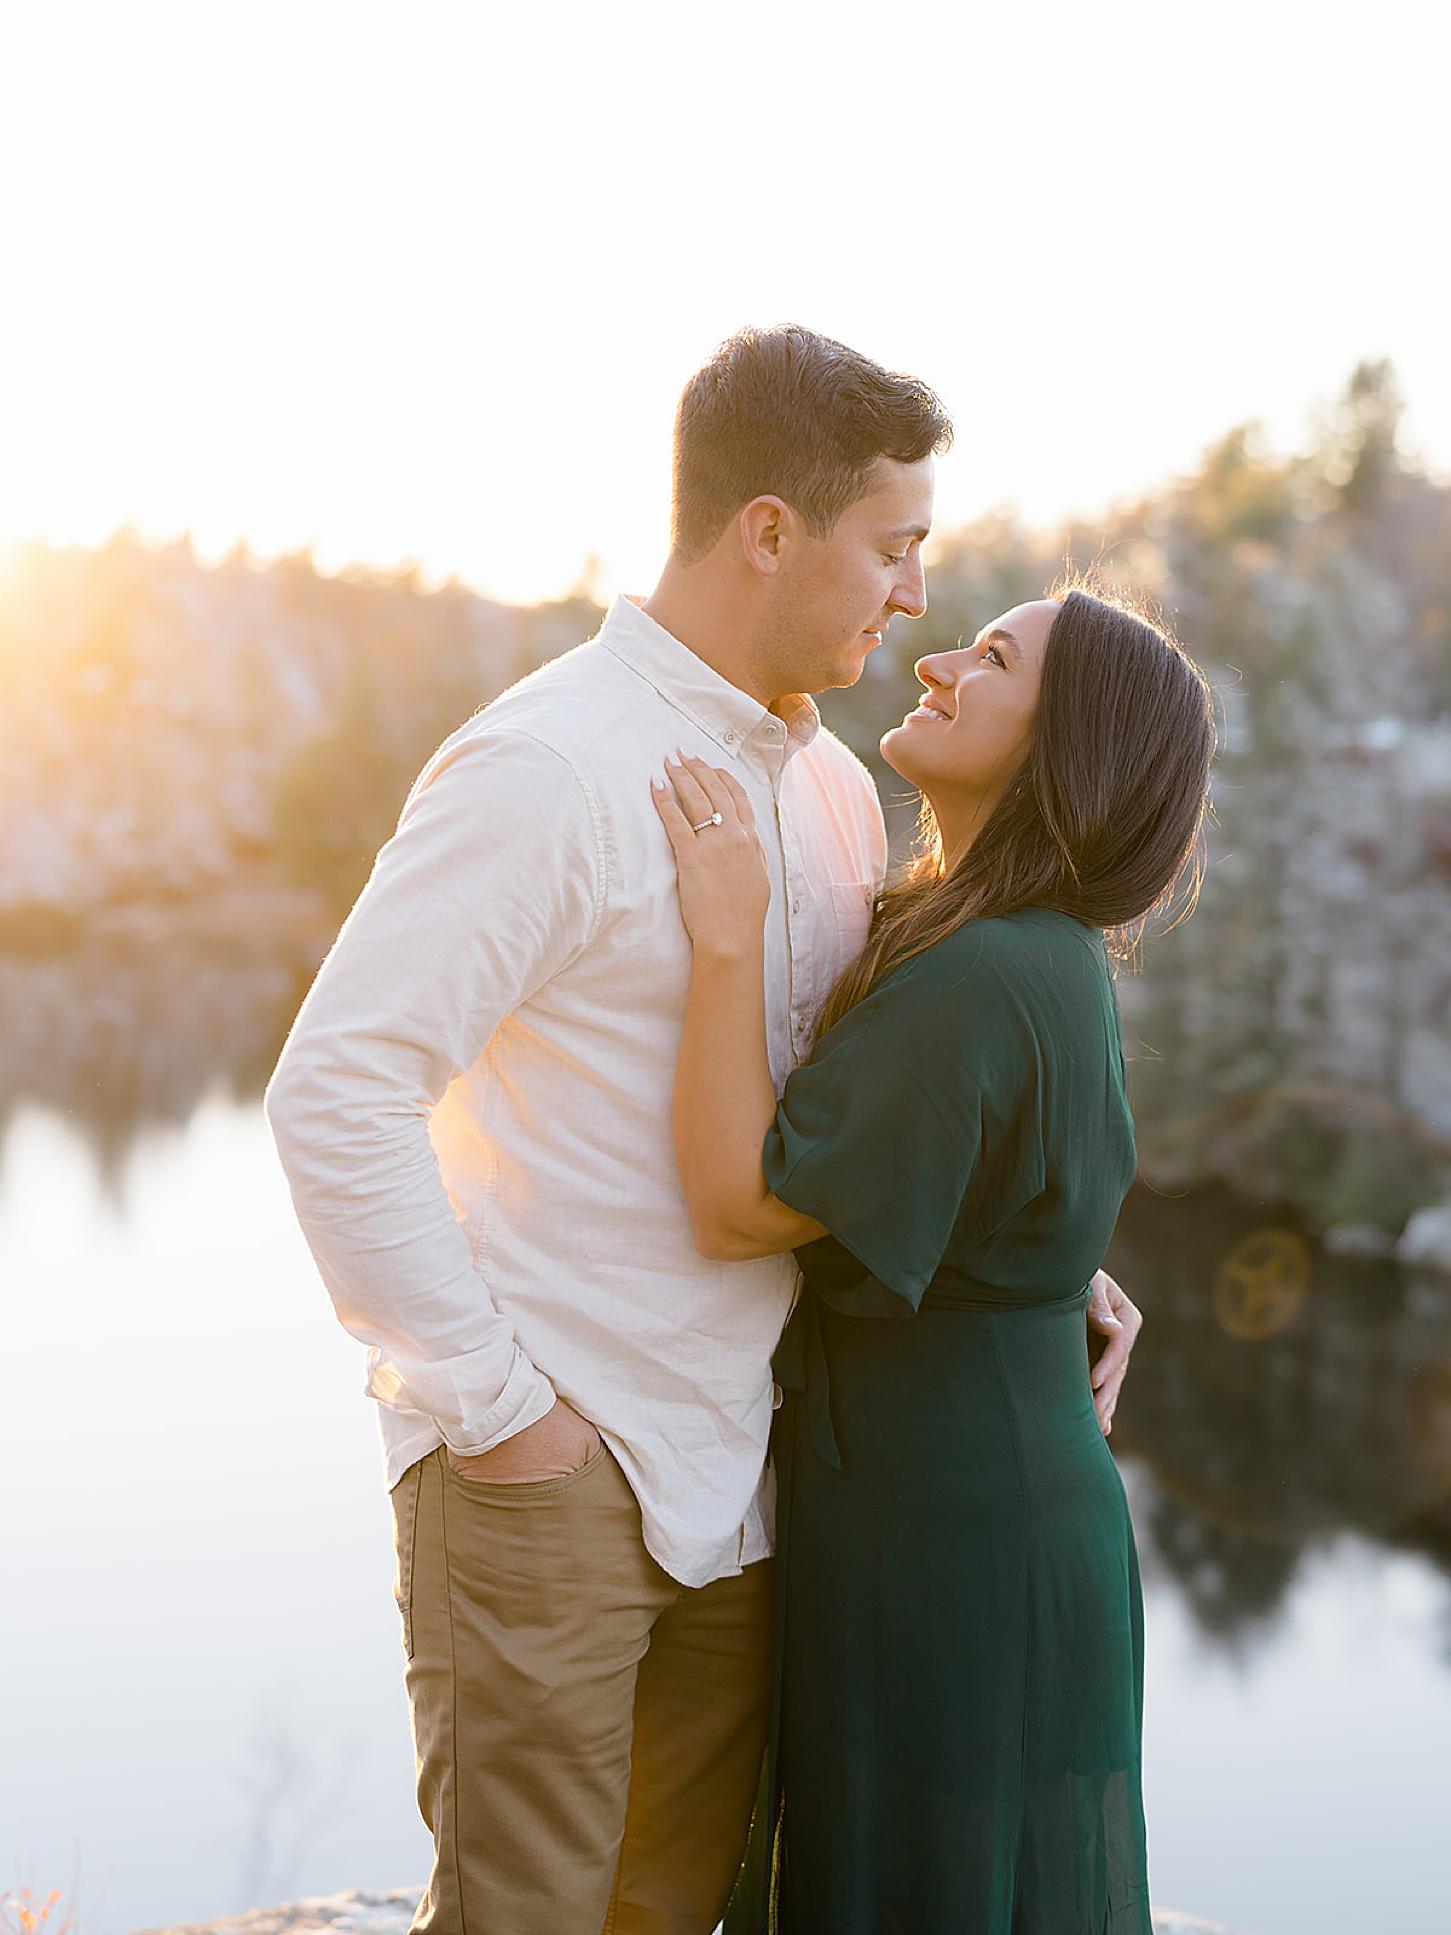 Vermont Destination Engagement Photography by Magdalena Studios 0002